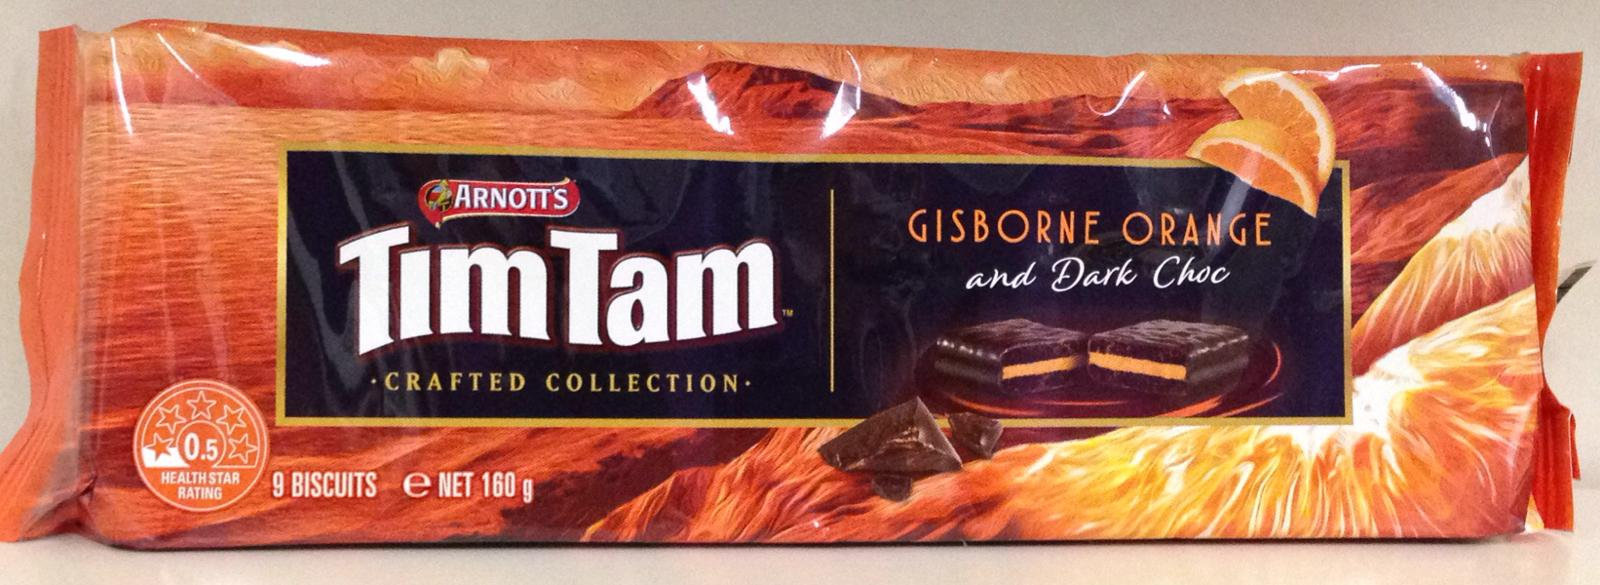 Arnott's Tim Tam Gisborne Orange And Dark Choc 160g